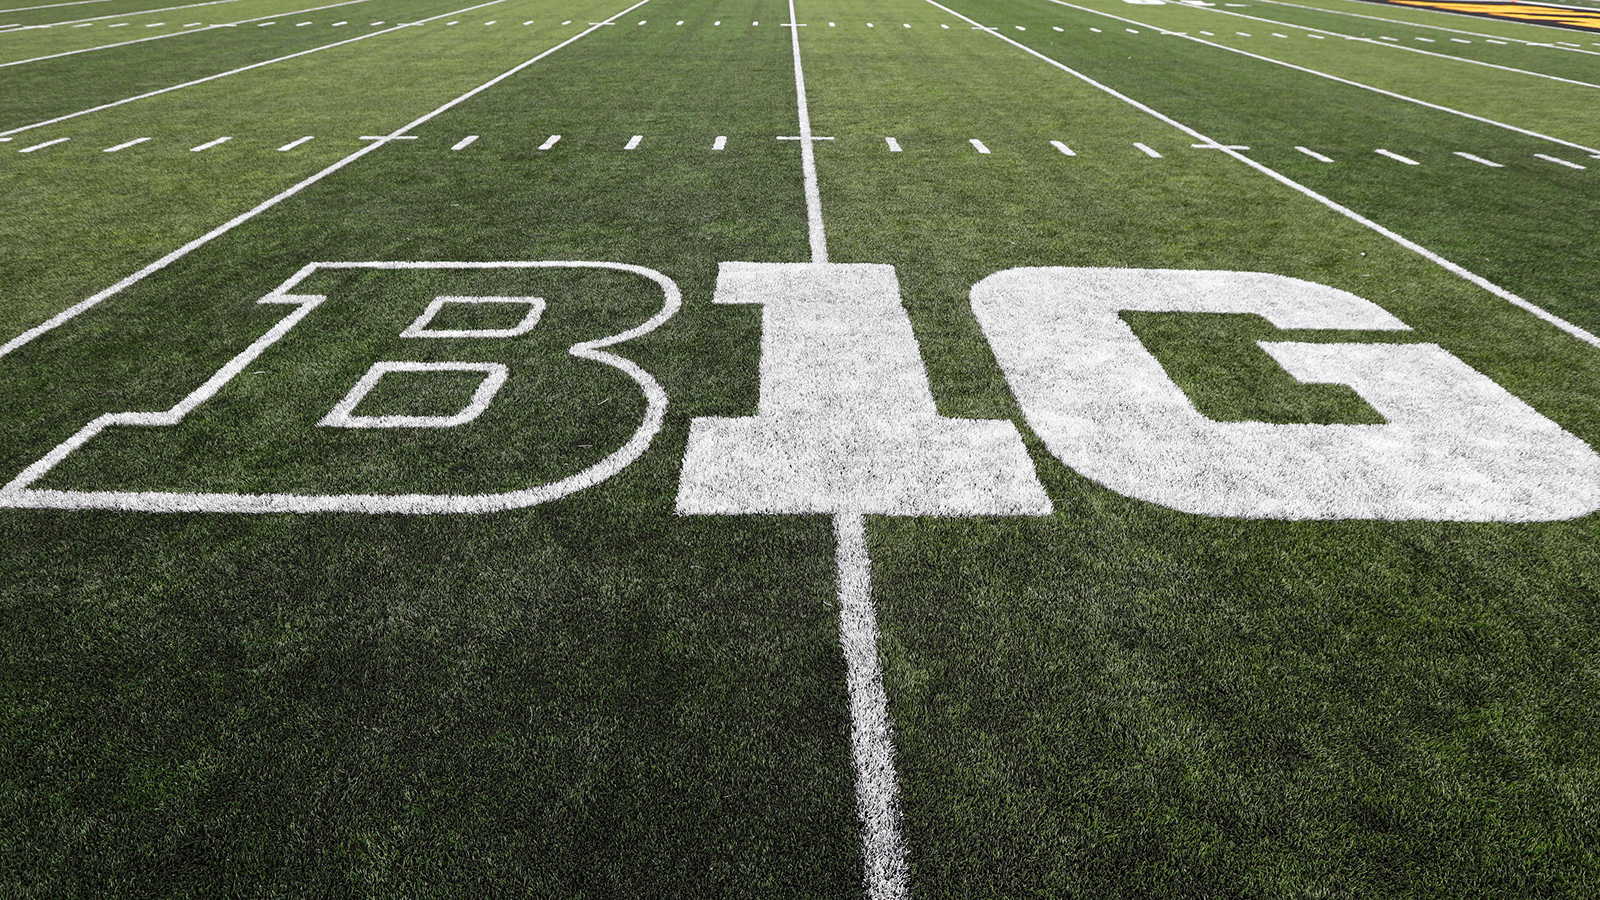 In this August 31, 2019 file photo, the Big Ten logo is displayed on the field before an NCAA college football game between Iowa and Miami of Ohio in Iowa City.